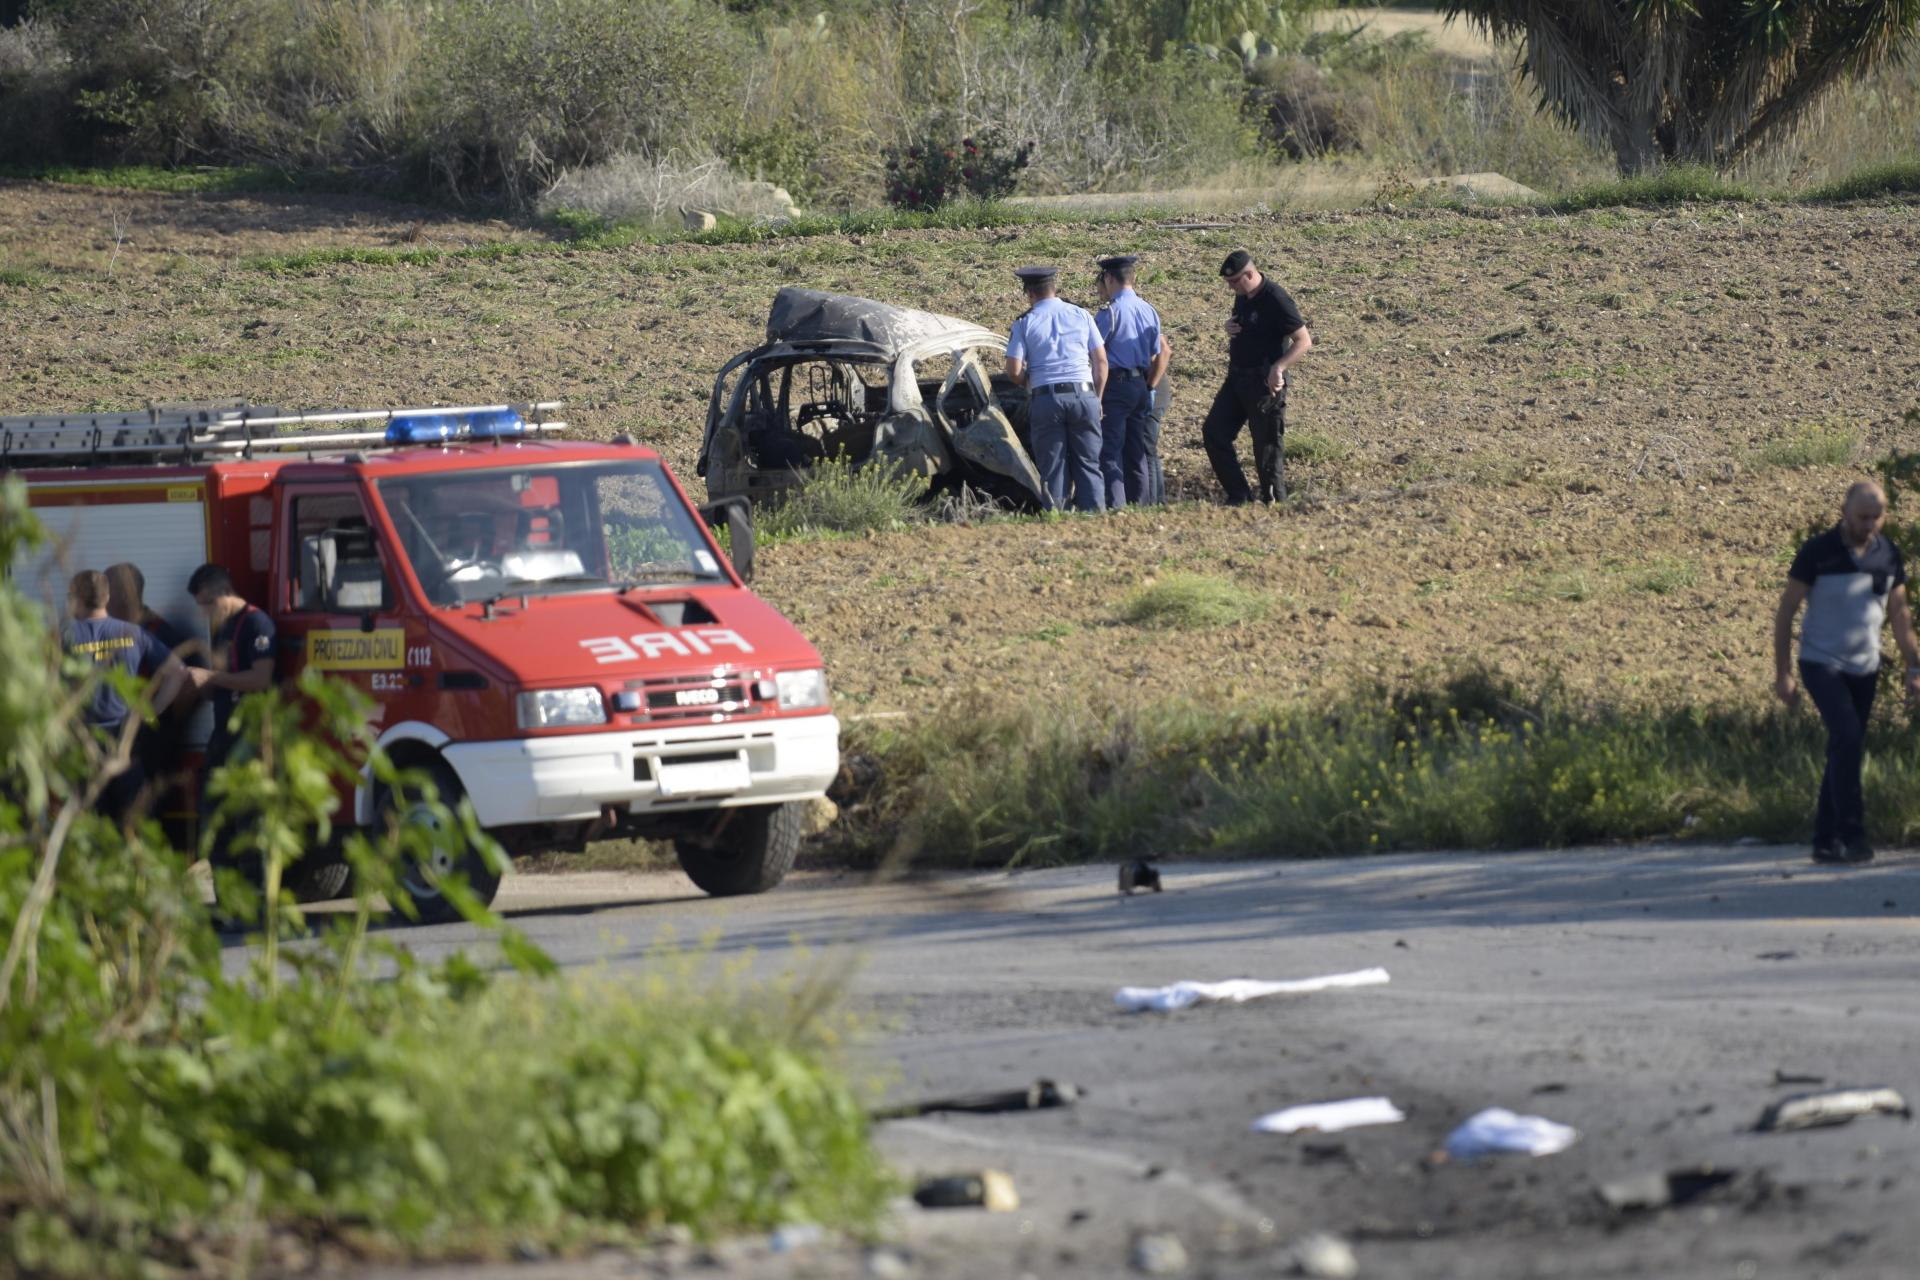 The murder of Daphne Caruana Galizia was the stand-out development of the past decade.